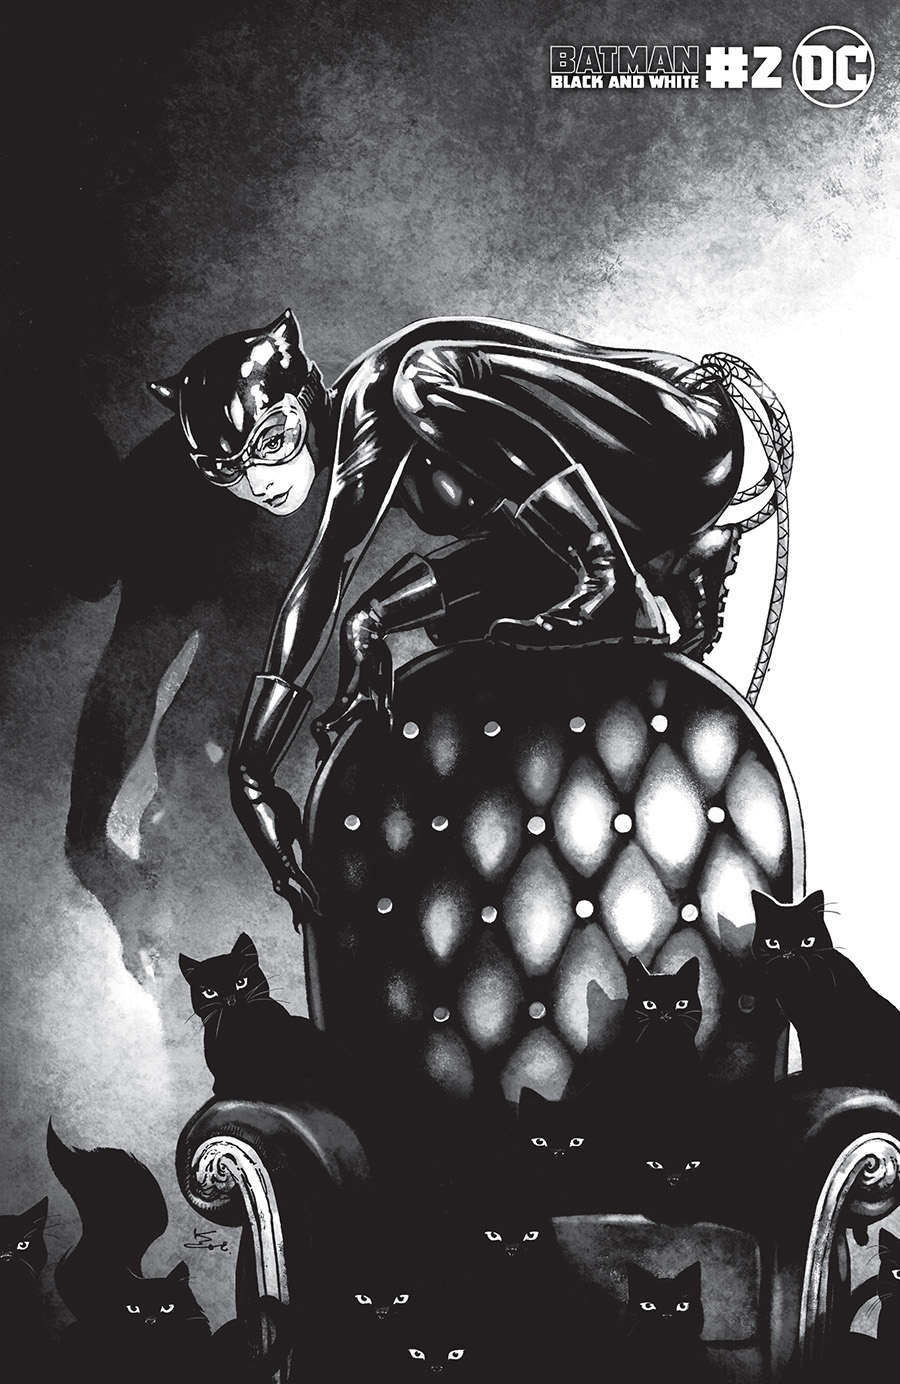 Batman Black & White Vol 3 #2 Cover C Variant Kamome Shirahama Catwoman Cover (Limit 1 Per Customer)